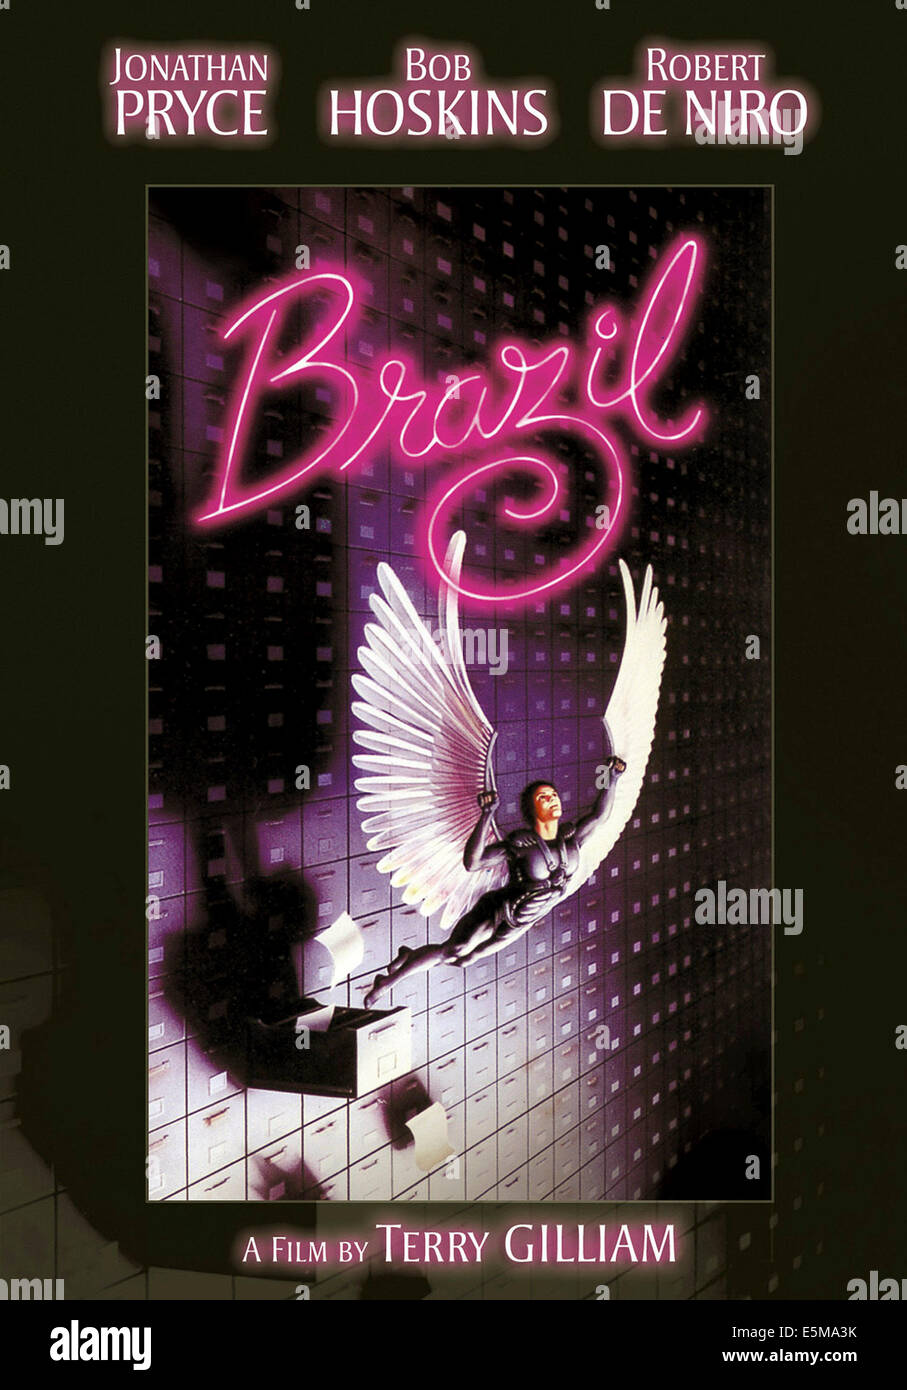 BRAZIL, 1985, (c) Universal/courtesy Everett Collection - Stock Image